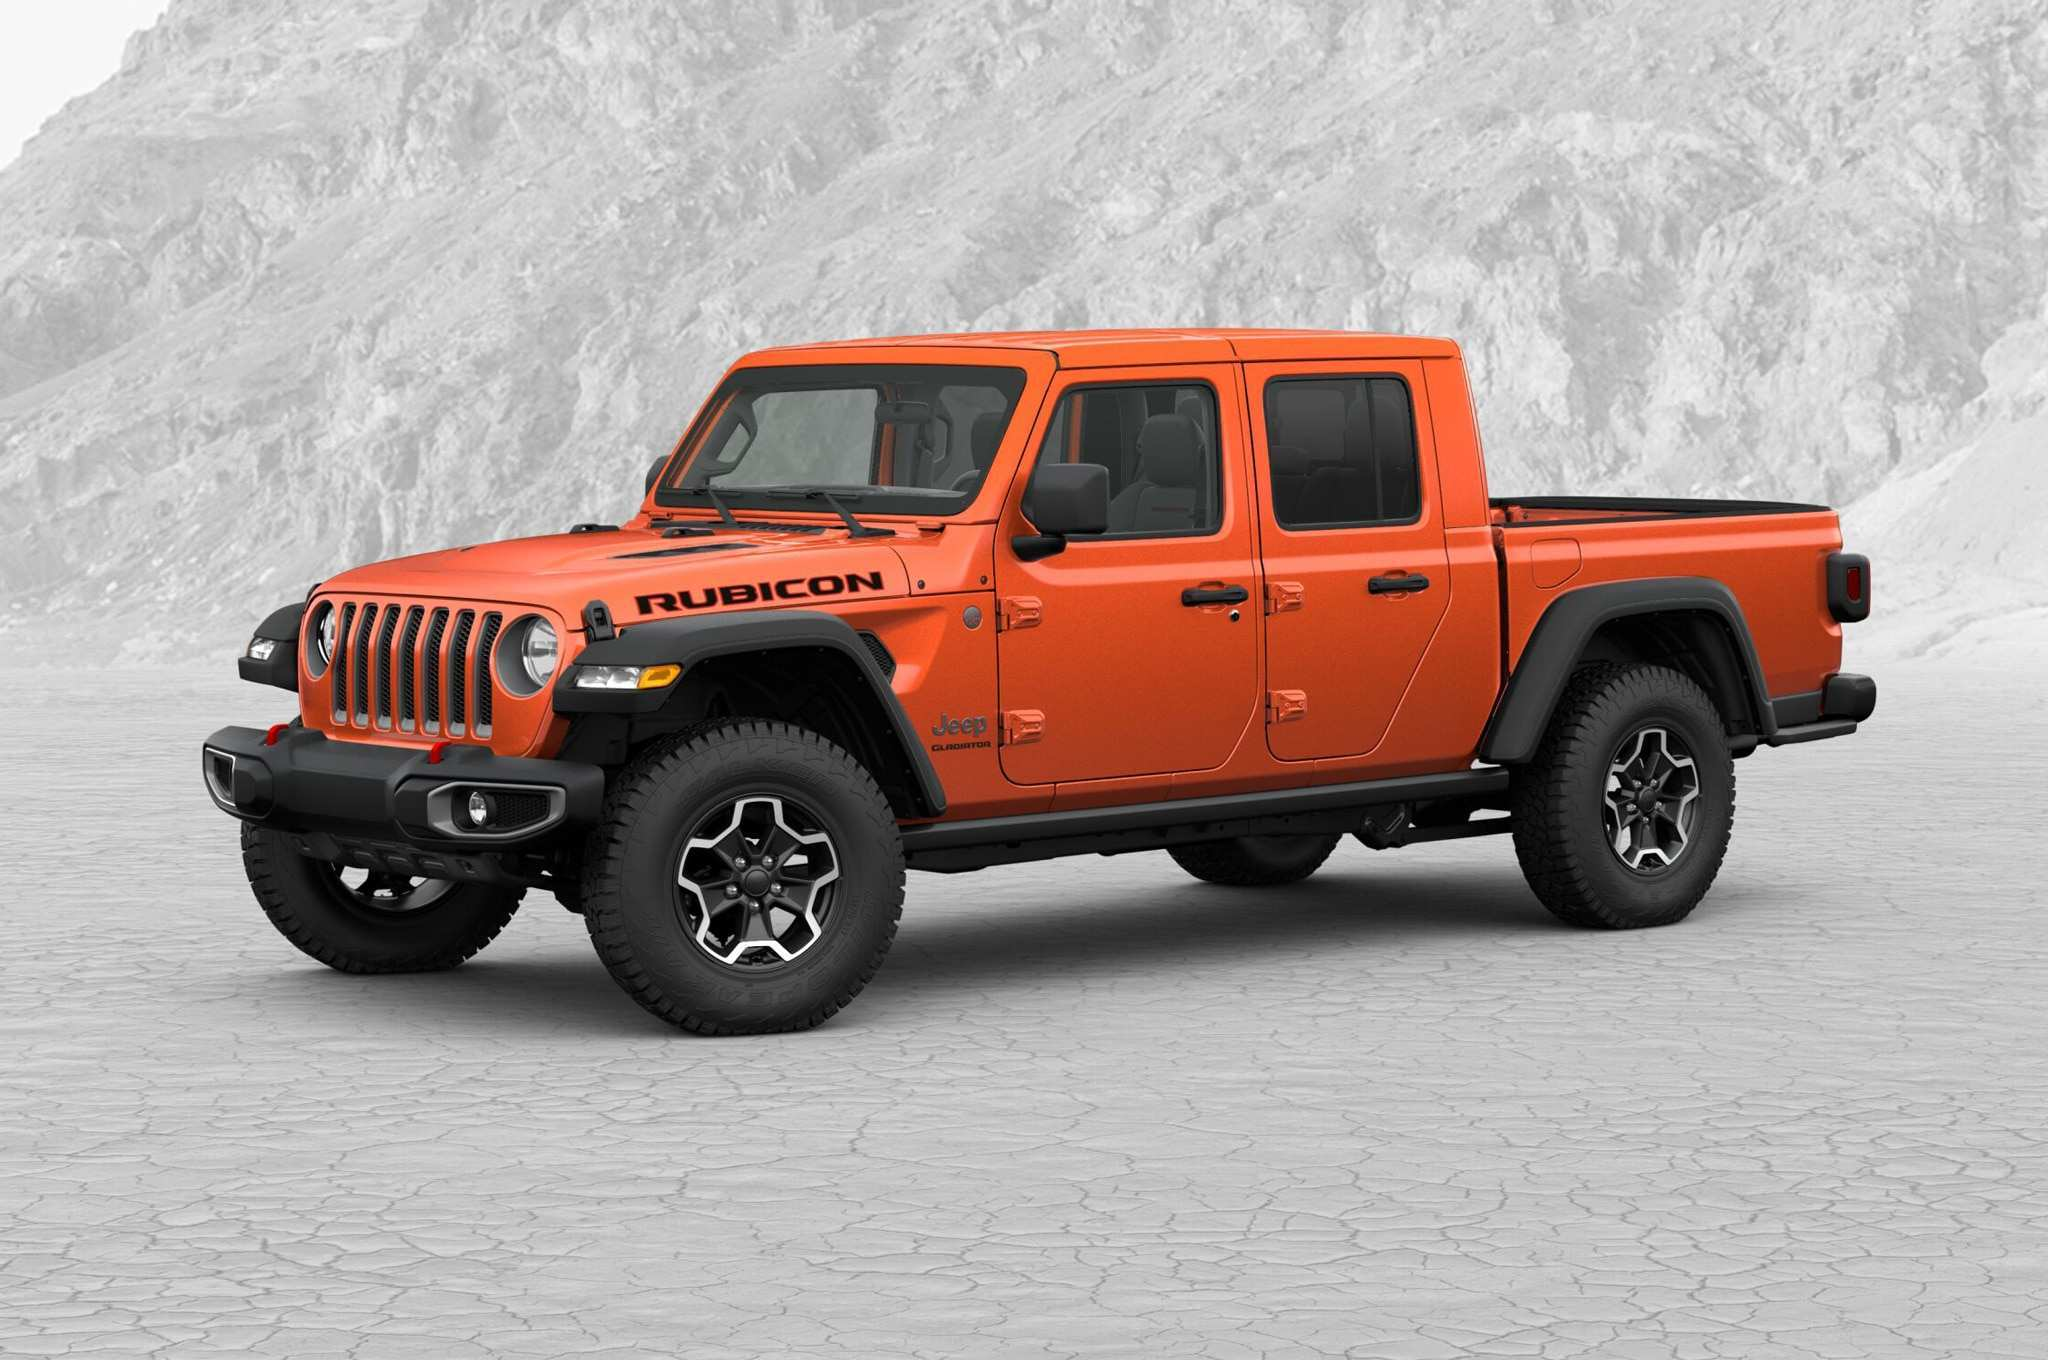 99 The Best 2020 Jeep Gladiator Build And Price History